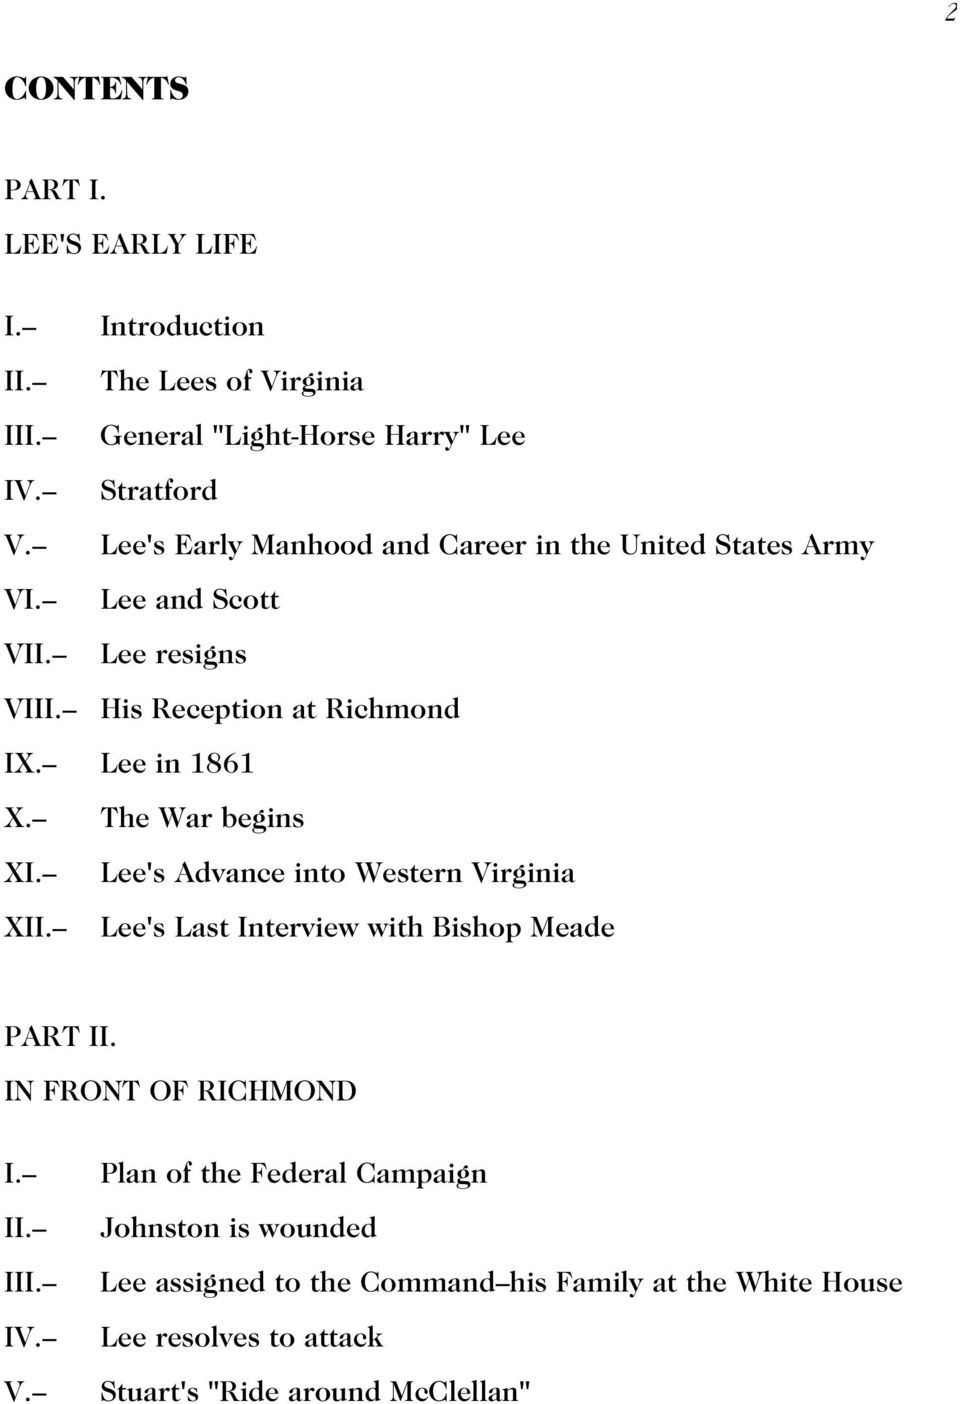 -- The War begins XI.-- Lee's Advance into Western Virginia XII.-- Lee's Last Interview with Bishop Meade PART II. IN FRONT OF RICHMOND I.-- II.-- III.